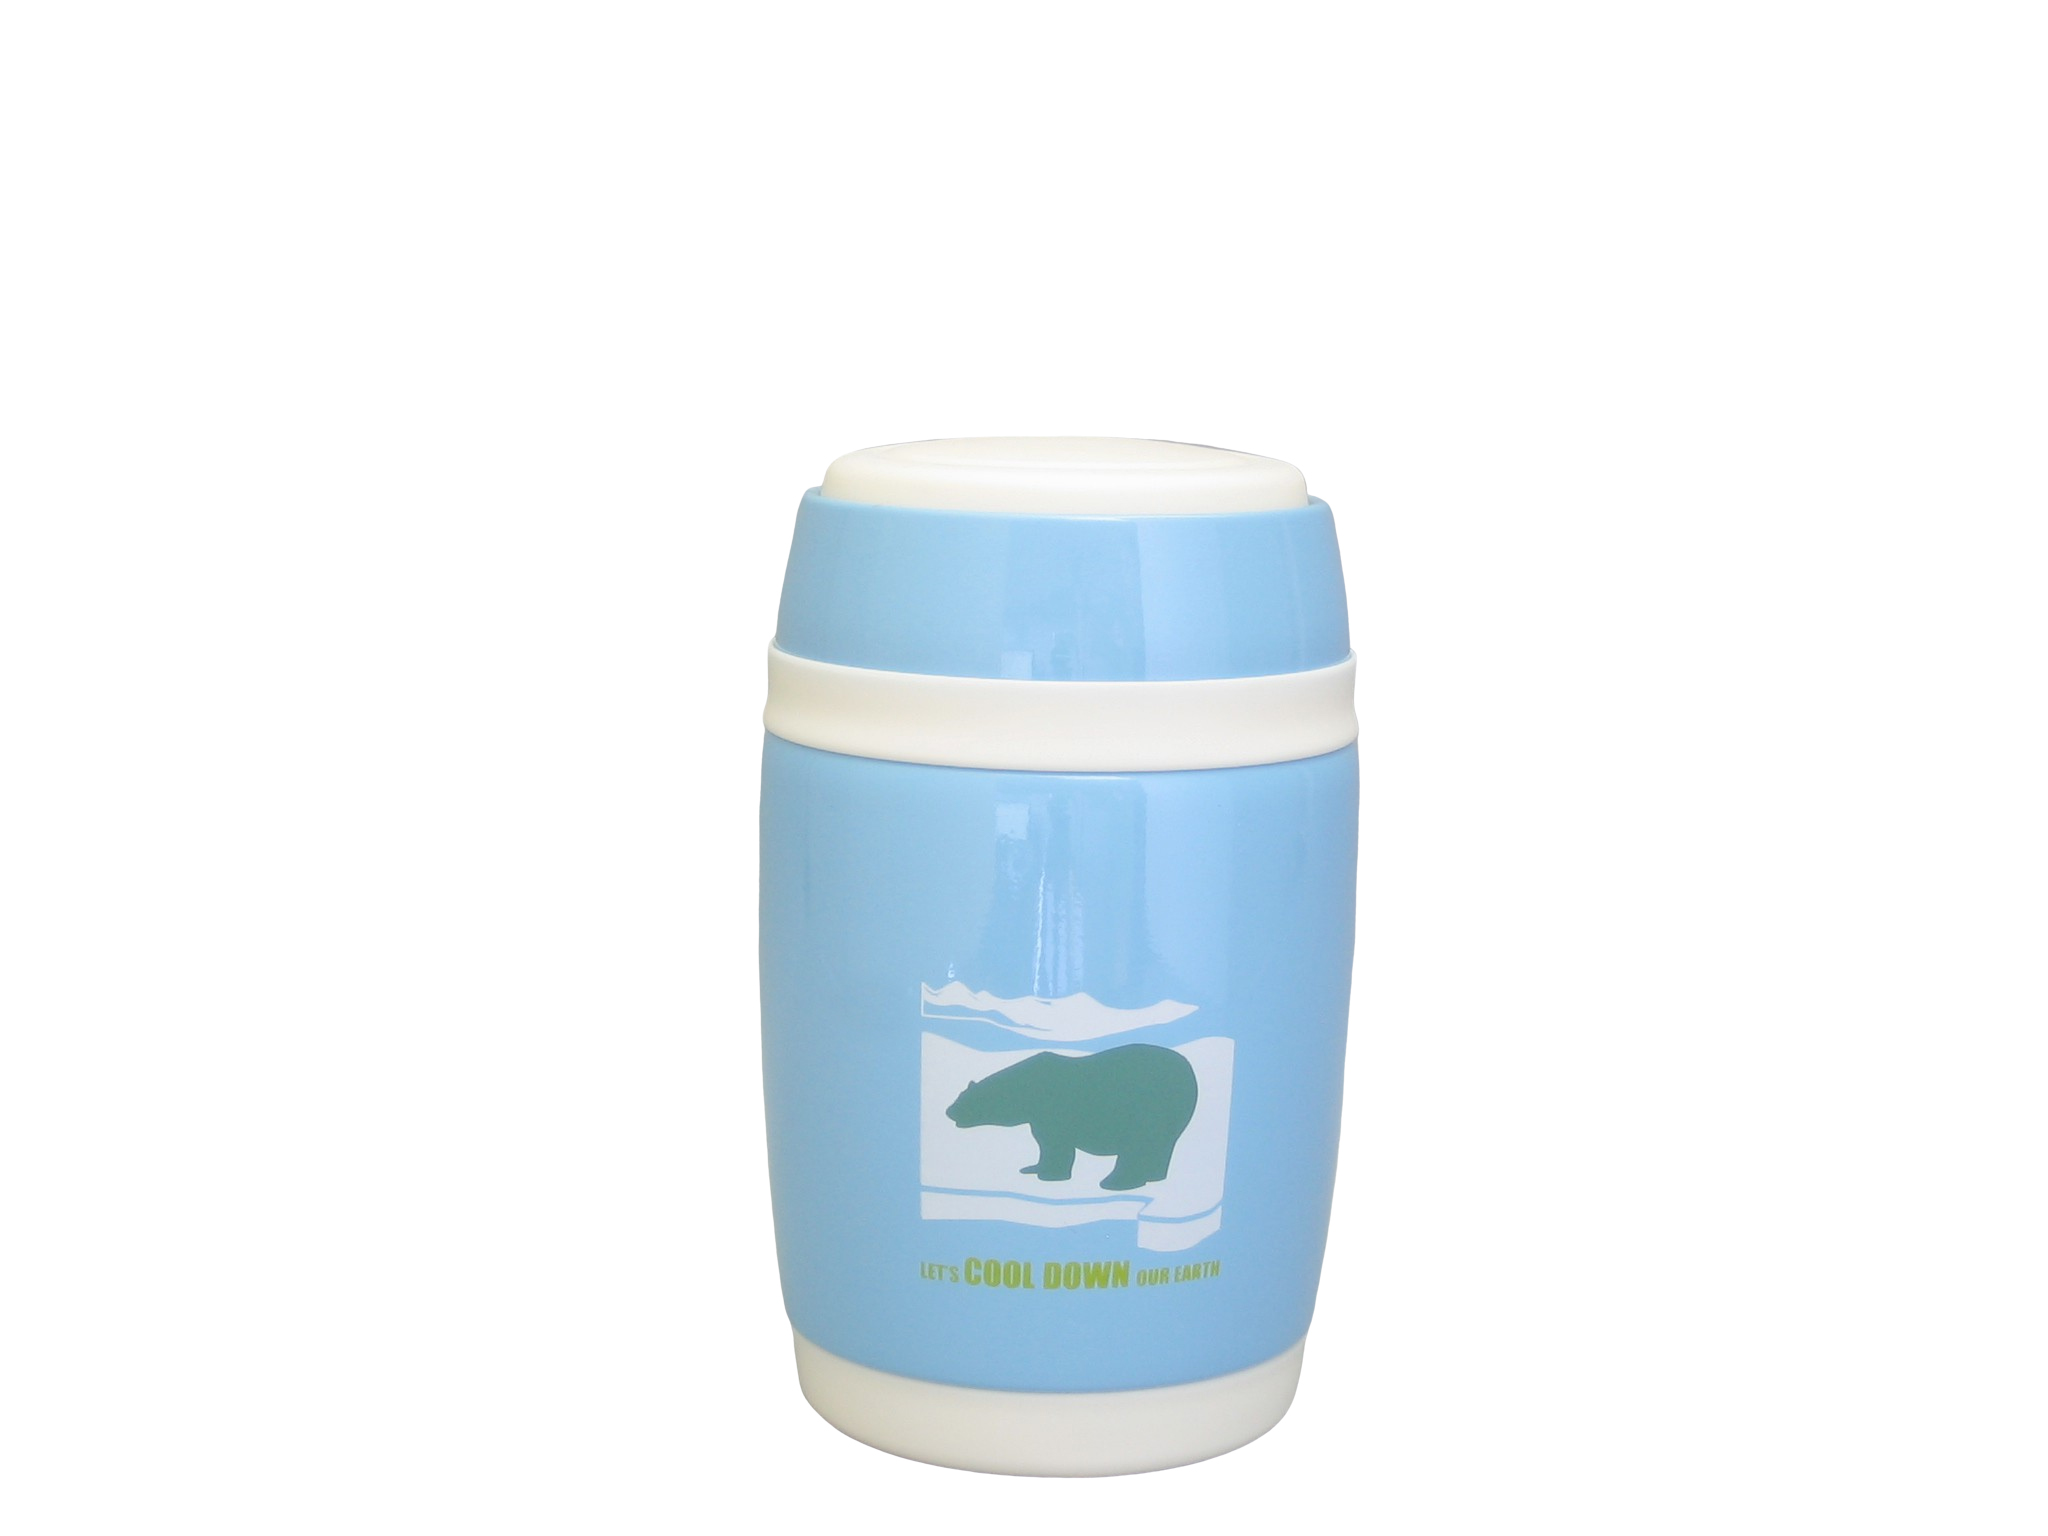 LUNCH05-012 - Food container SS unbreakable 0.5 L blue - KIDZ - Isobel